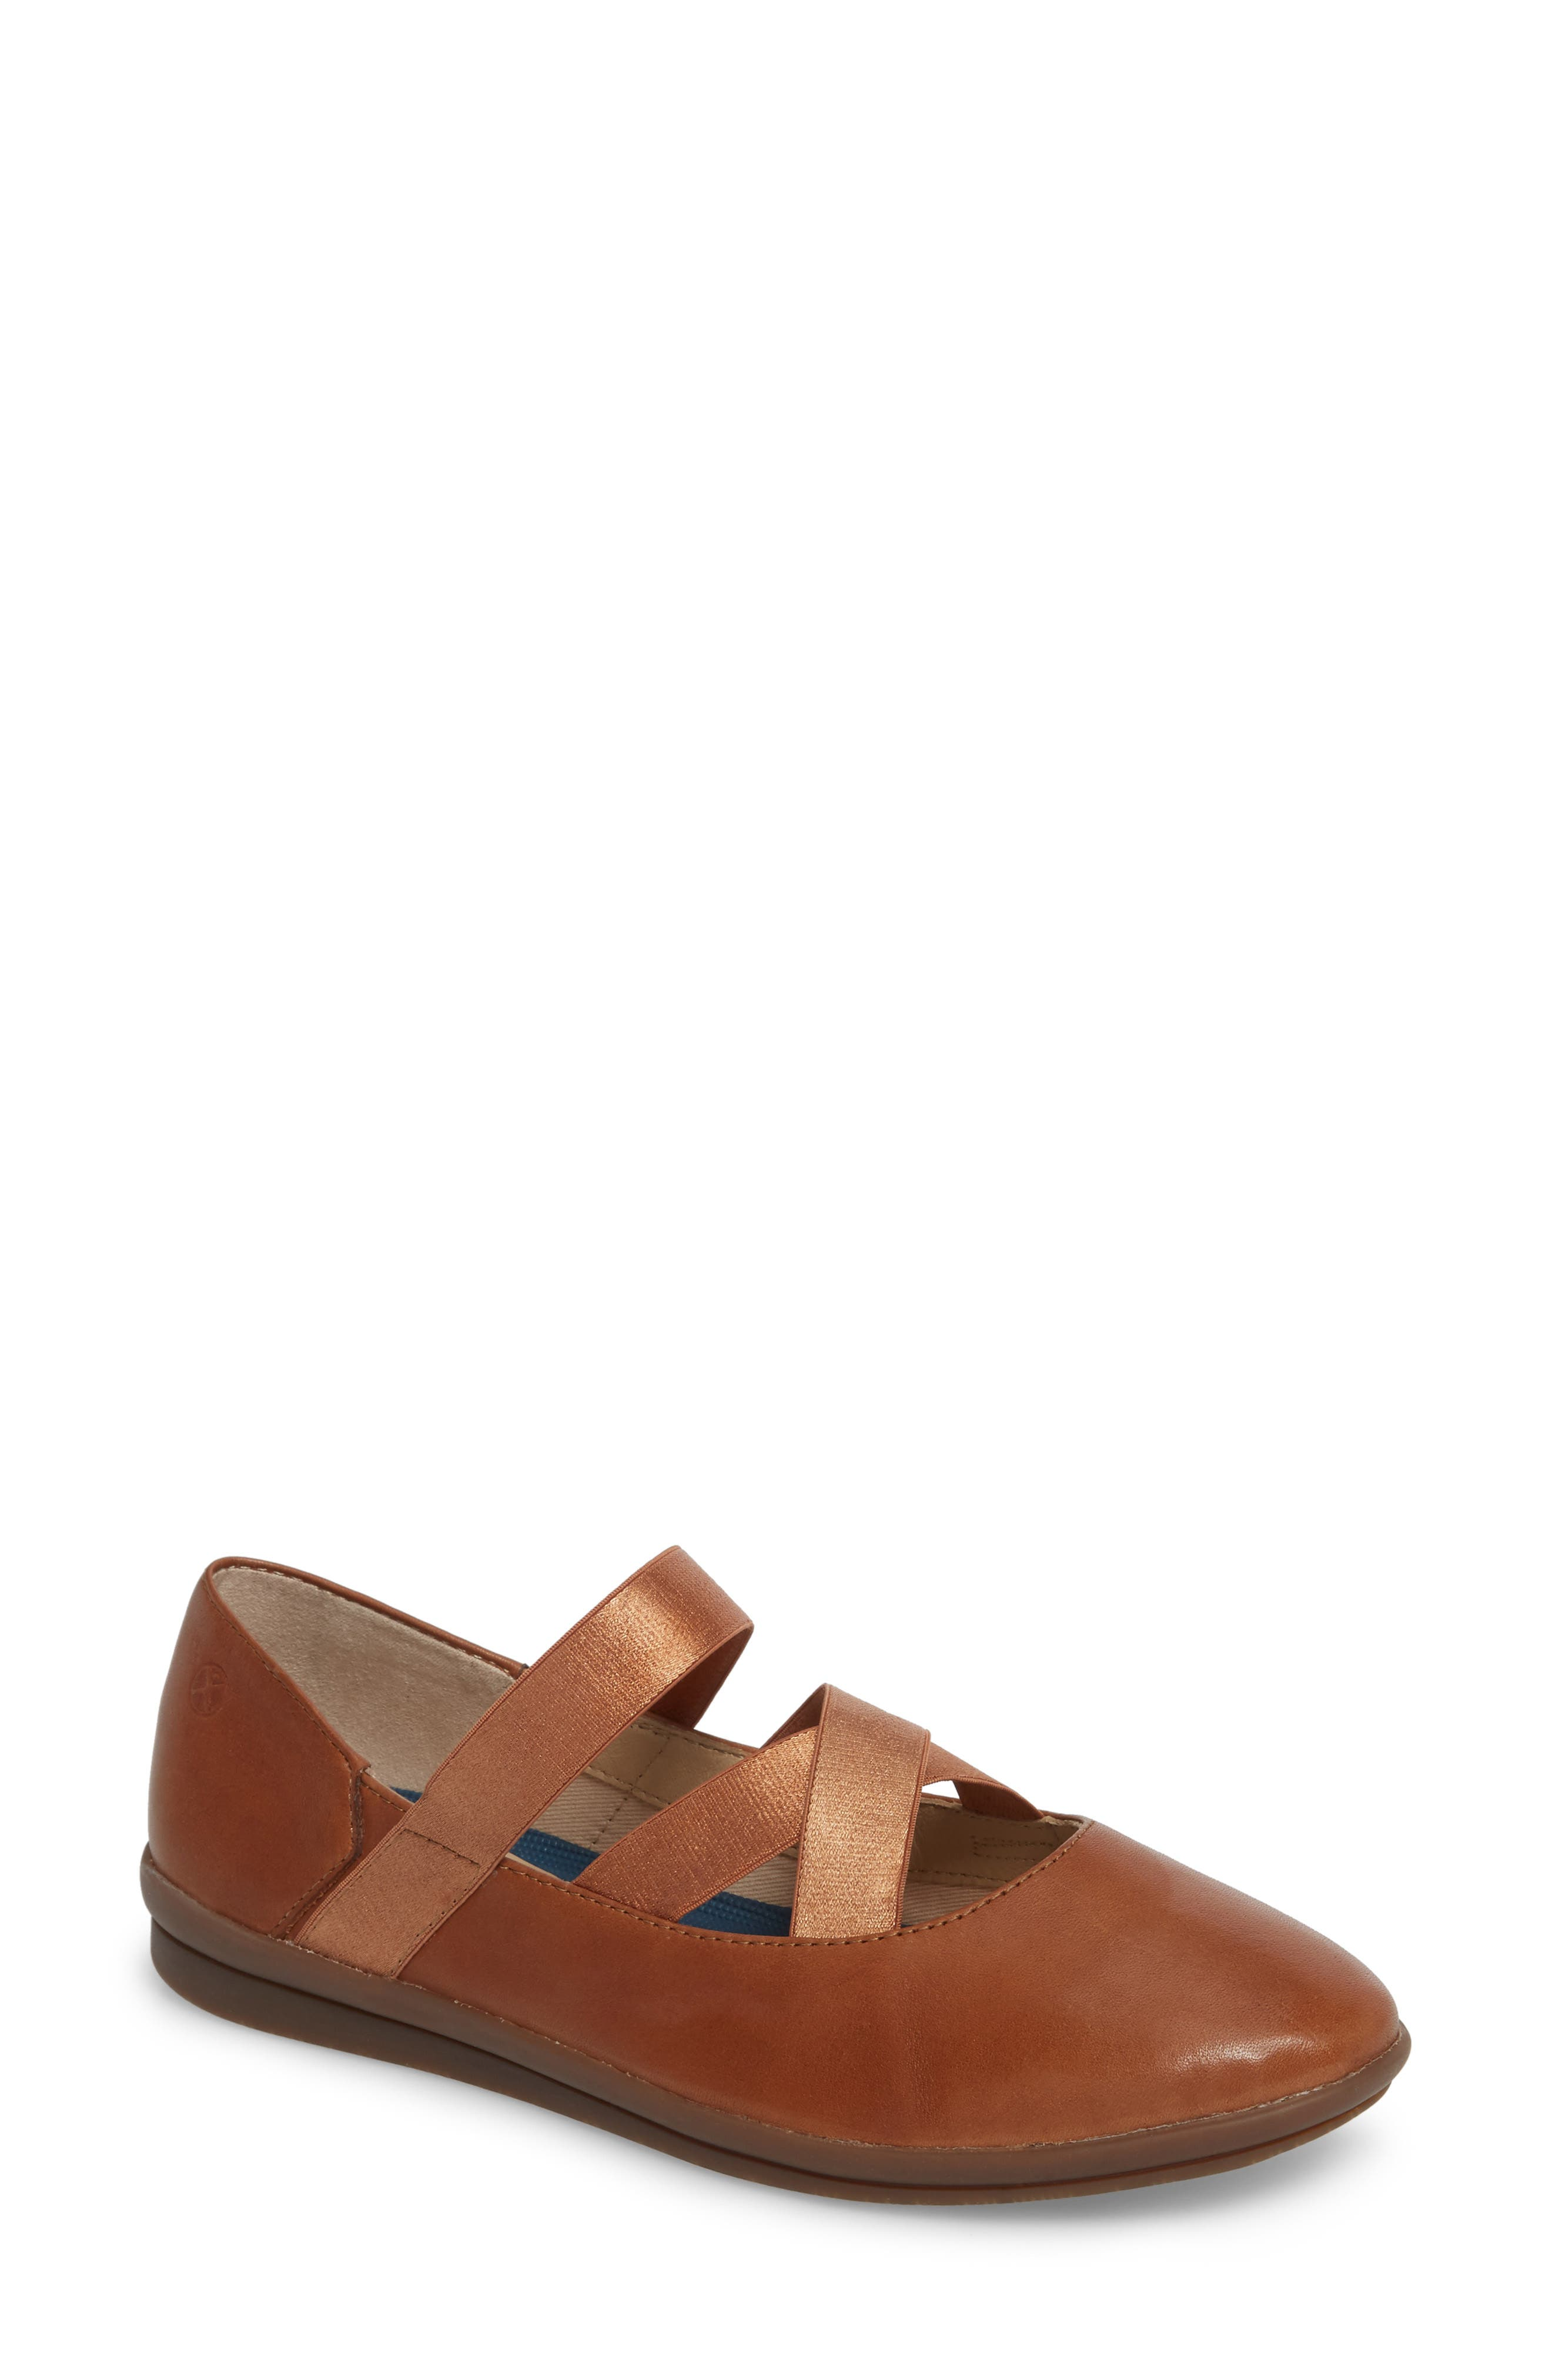 Main Image - Hush Puppies® Meree Madrine Cross Strap Flat (Women)